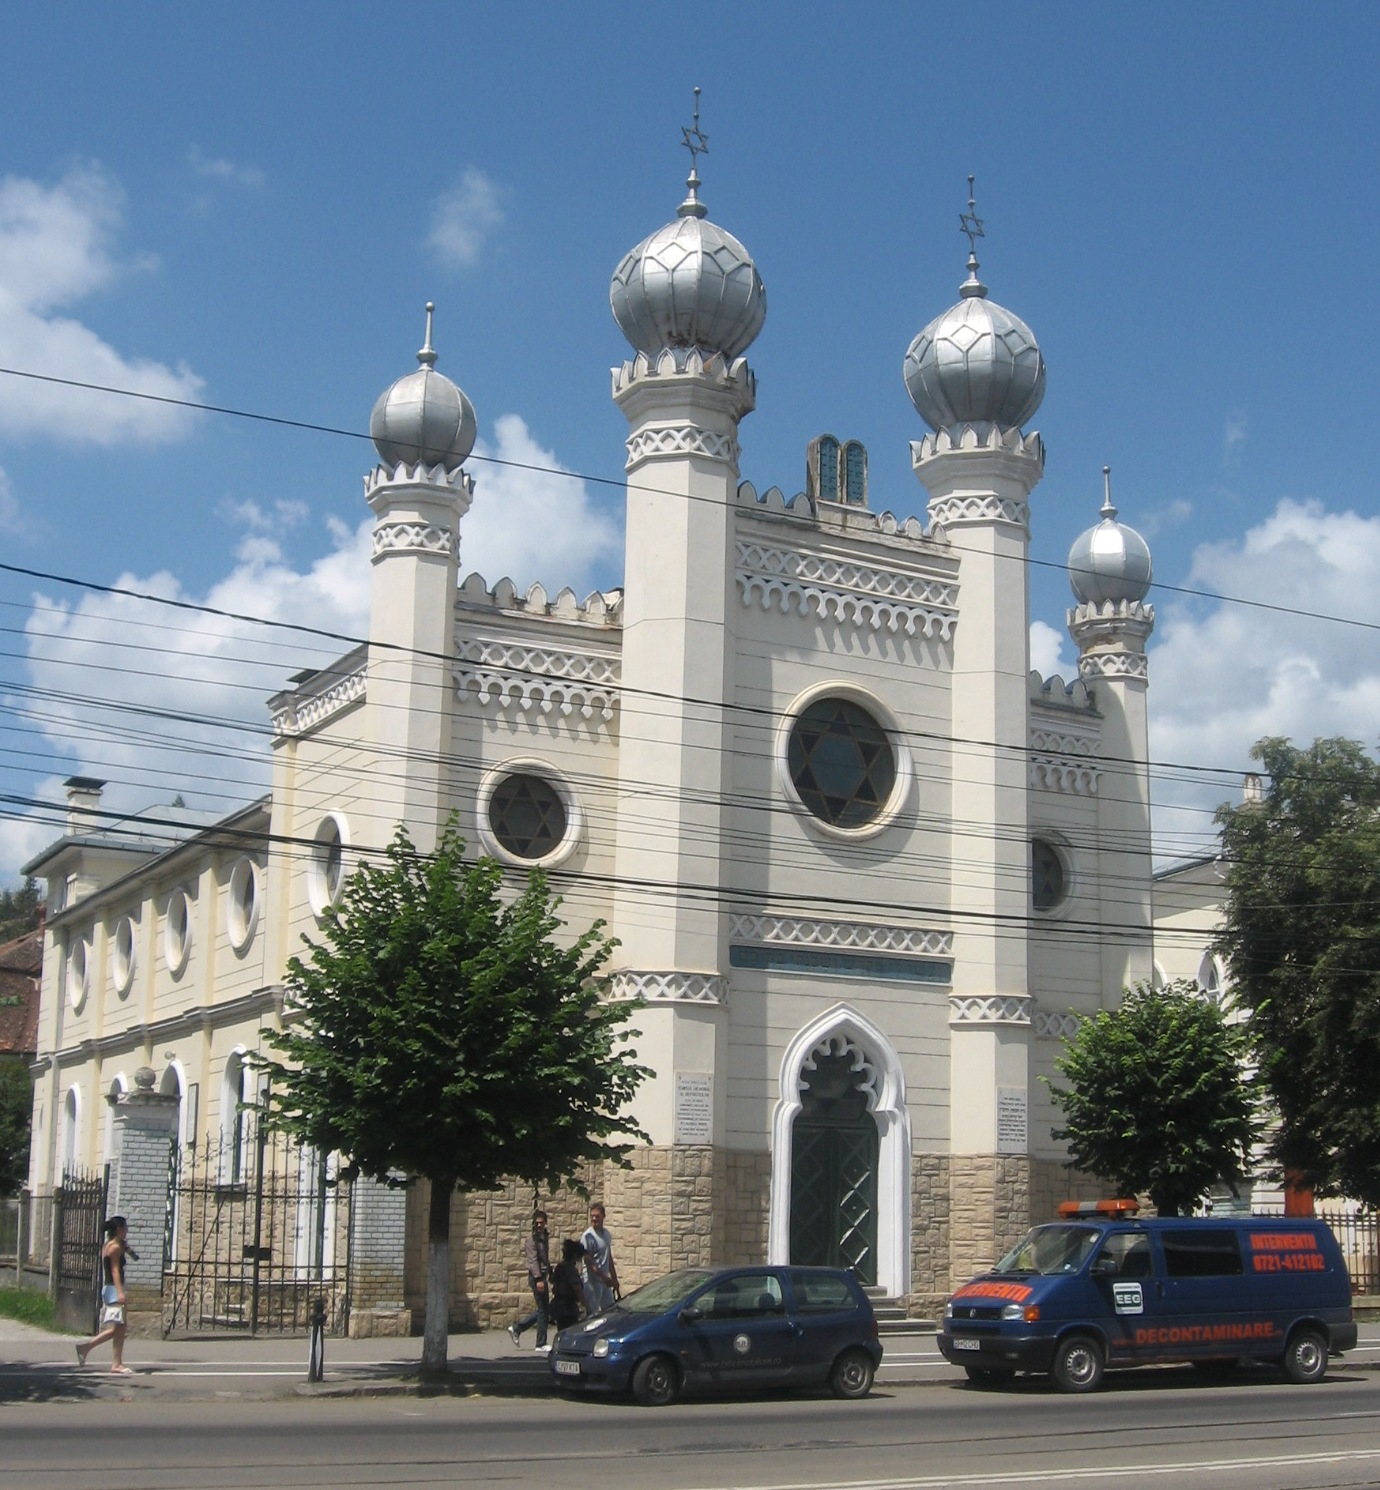 Traveller's guide to Cluj: The Jewish Face of Cluj-Napoca